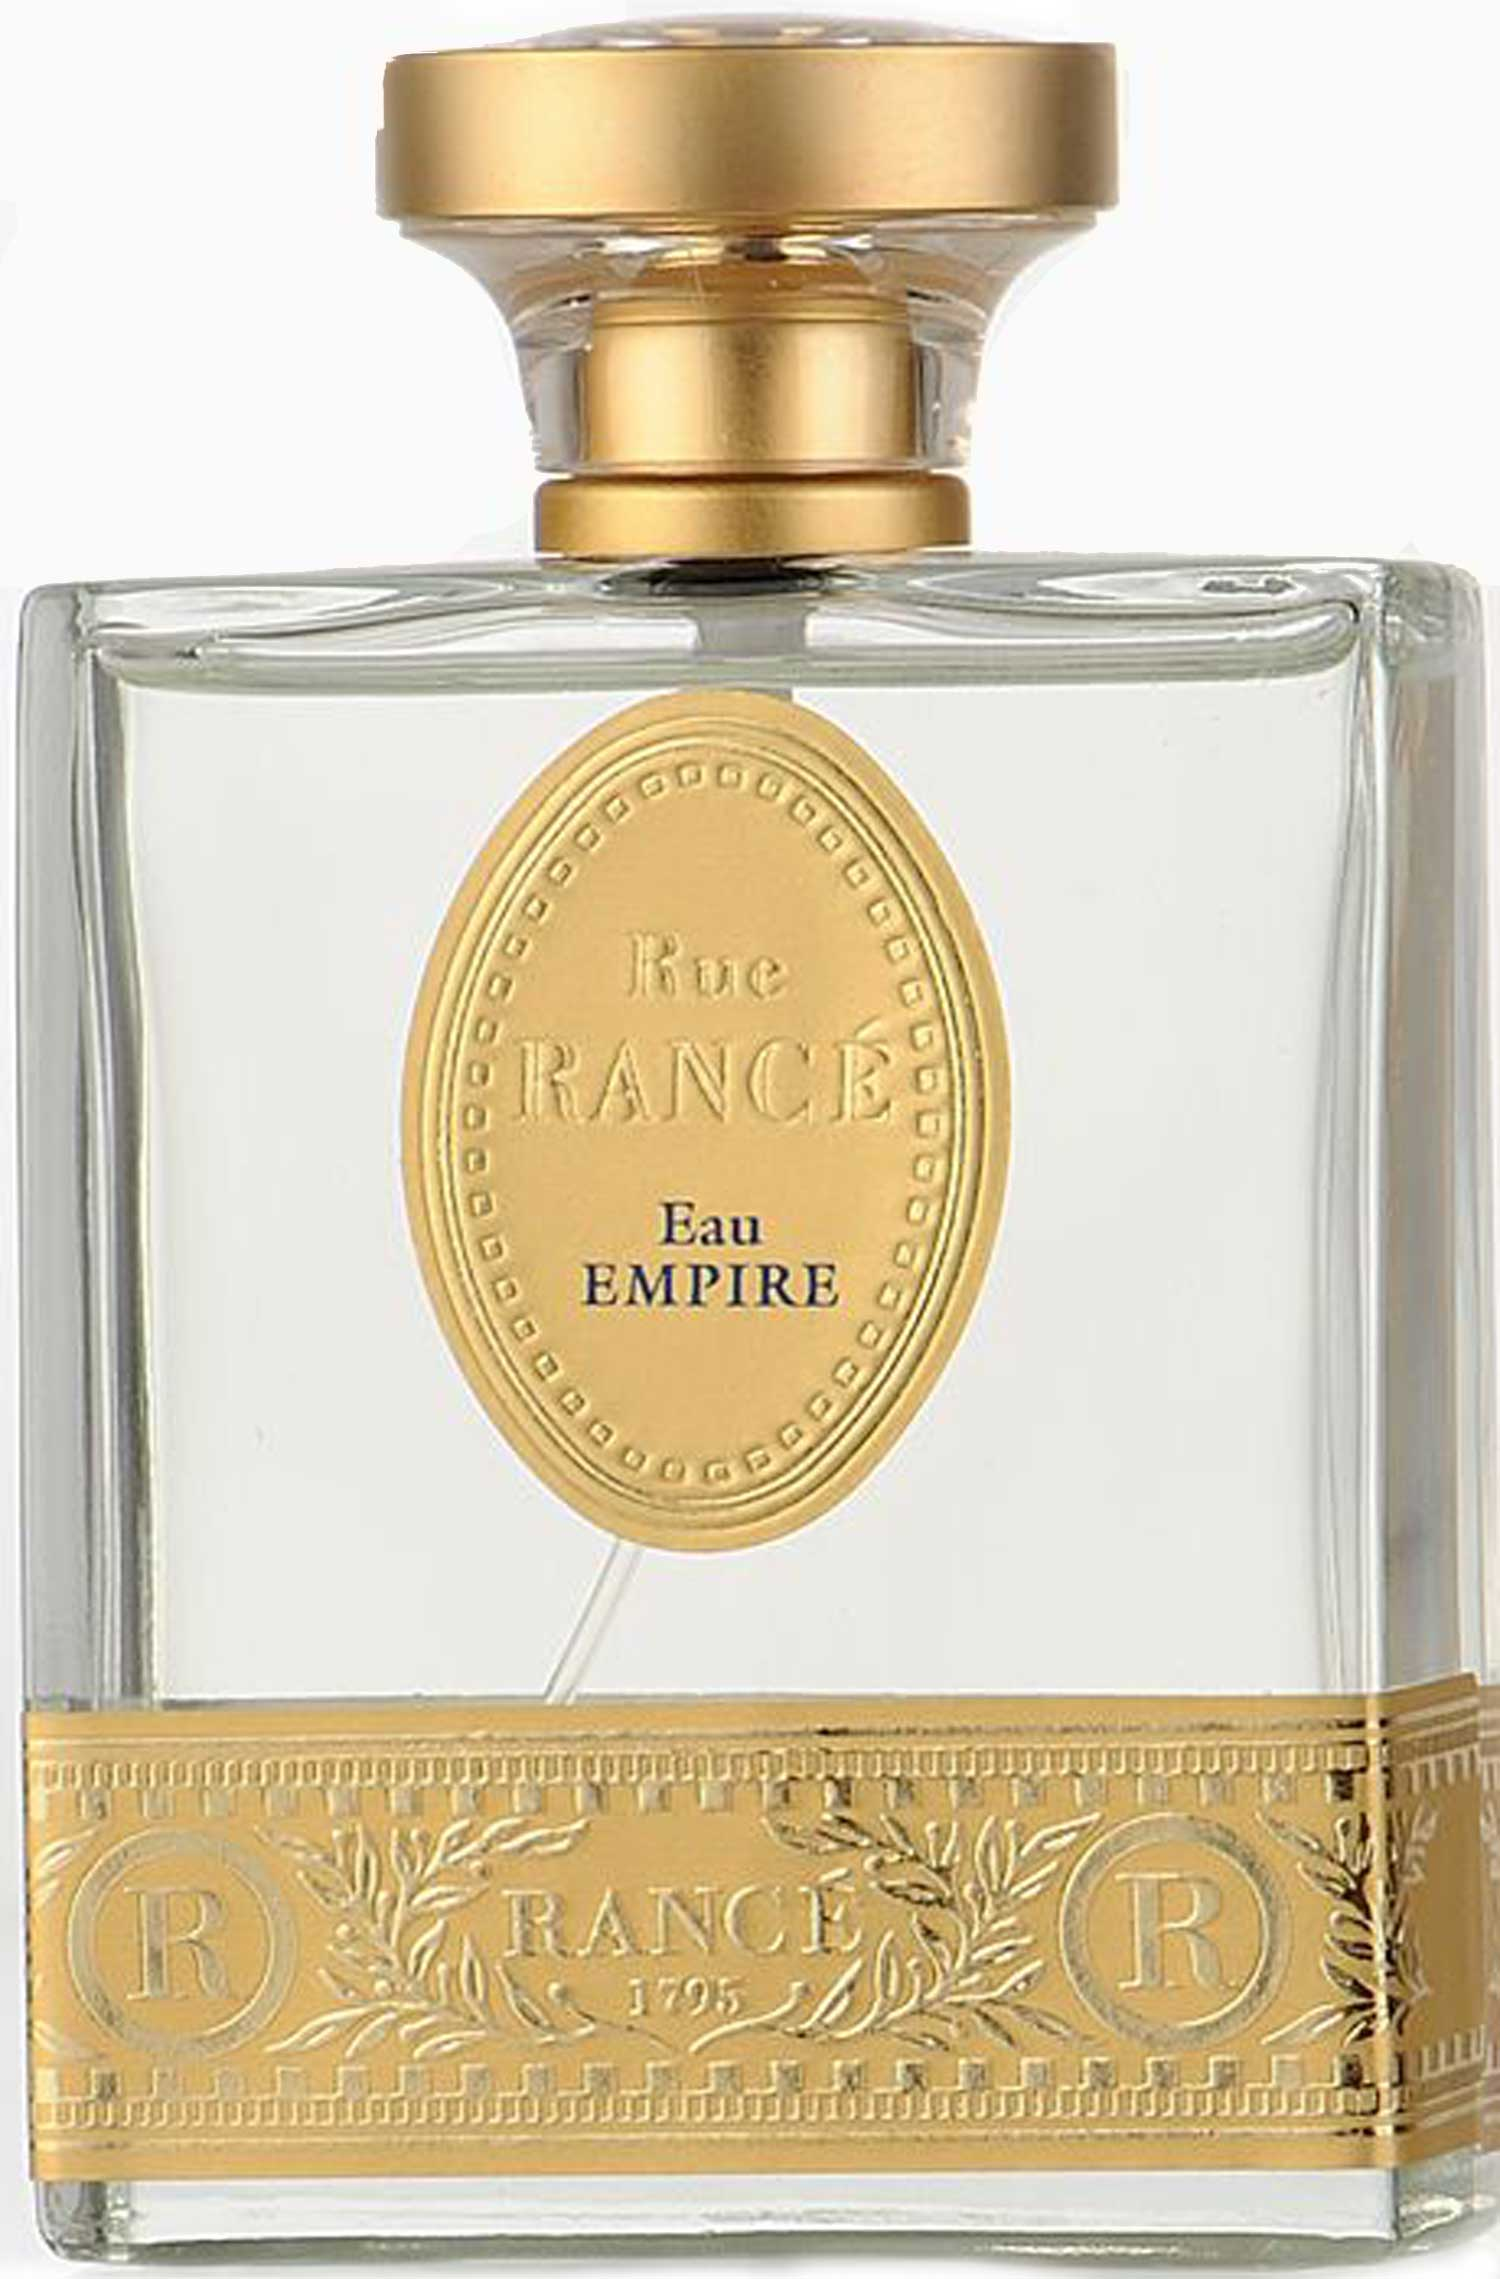 Rance Eau Empire (Rue Rance)